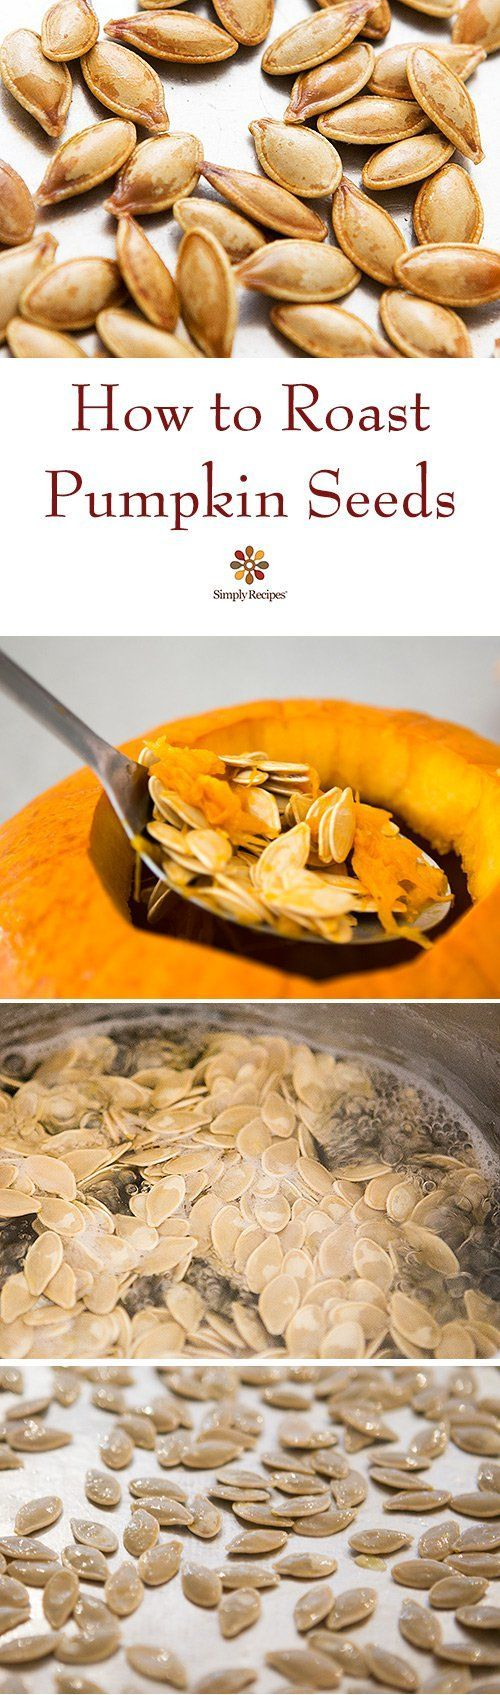 Roasted Pumpkin Seeds ~ Don't throw away the pumpkin seeds from your pumpkin!  Roast them for a delicious healthy Halloween snack ~ www.simplyrecipes.com